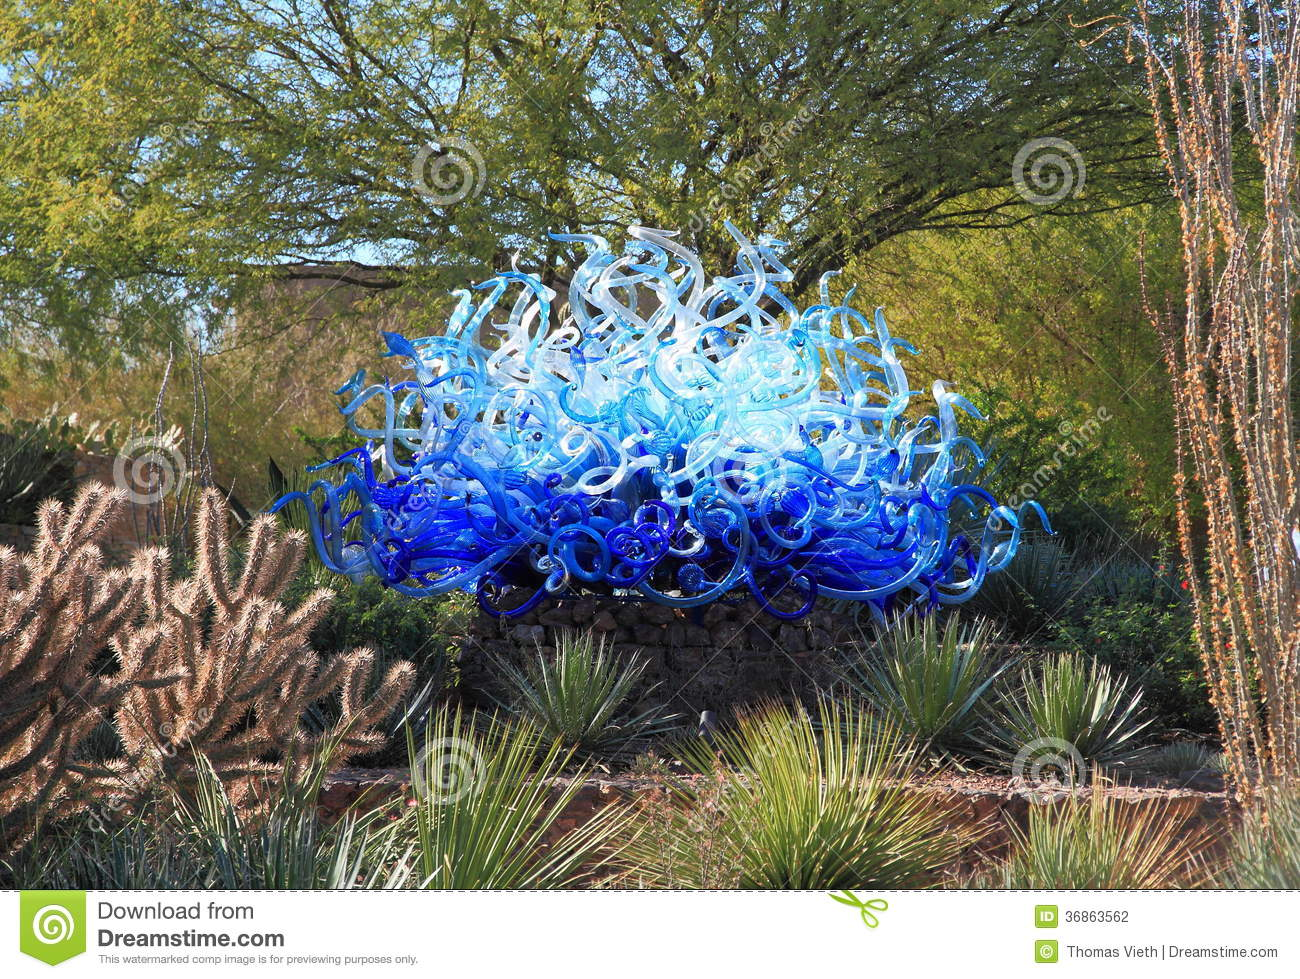 Usa phoenix arizona chihuly sculpture blue fiori sun for Botanical garden timing